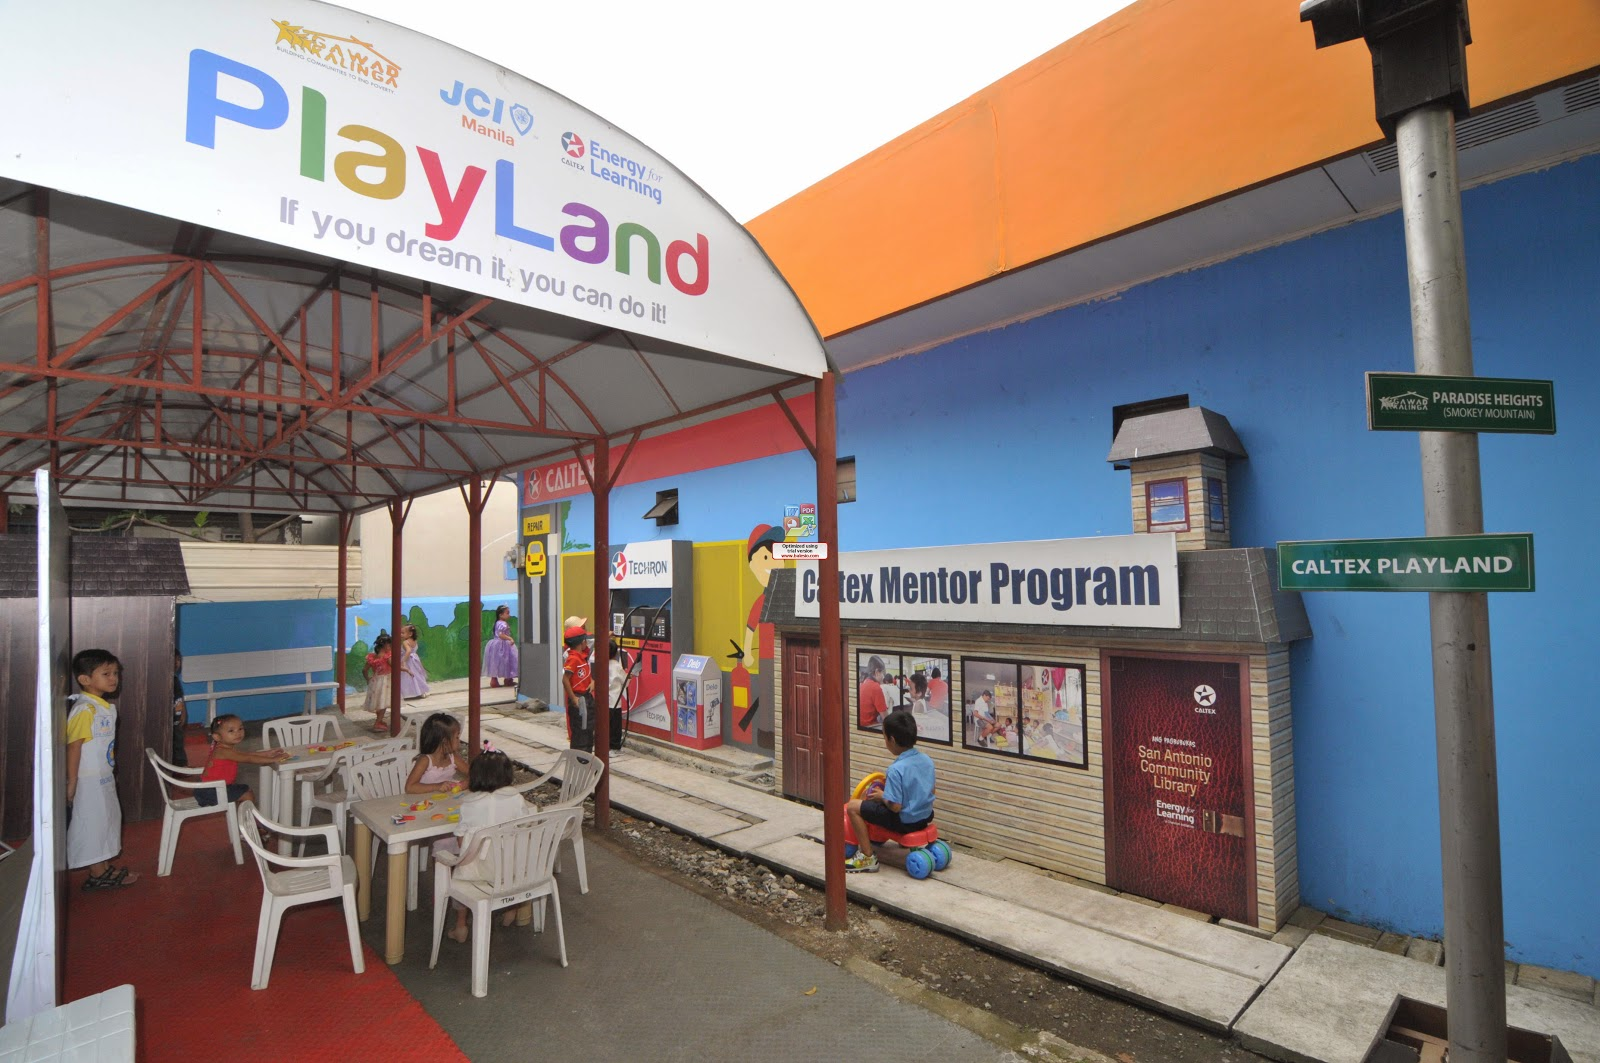 Caltex Playland in Smokey Mountain